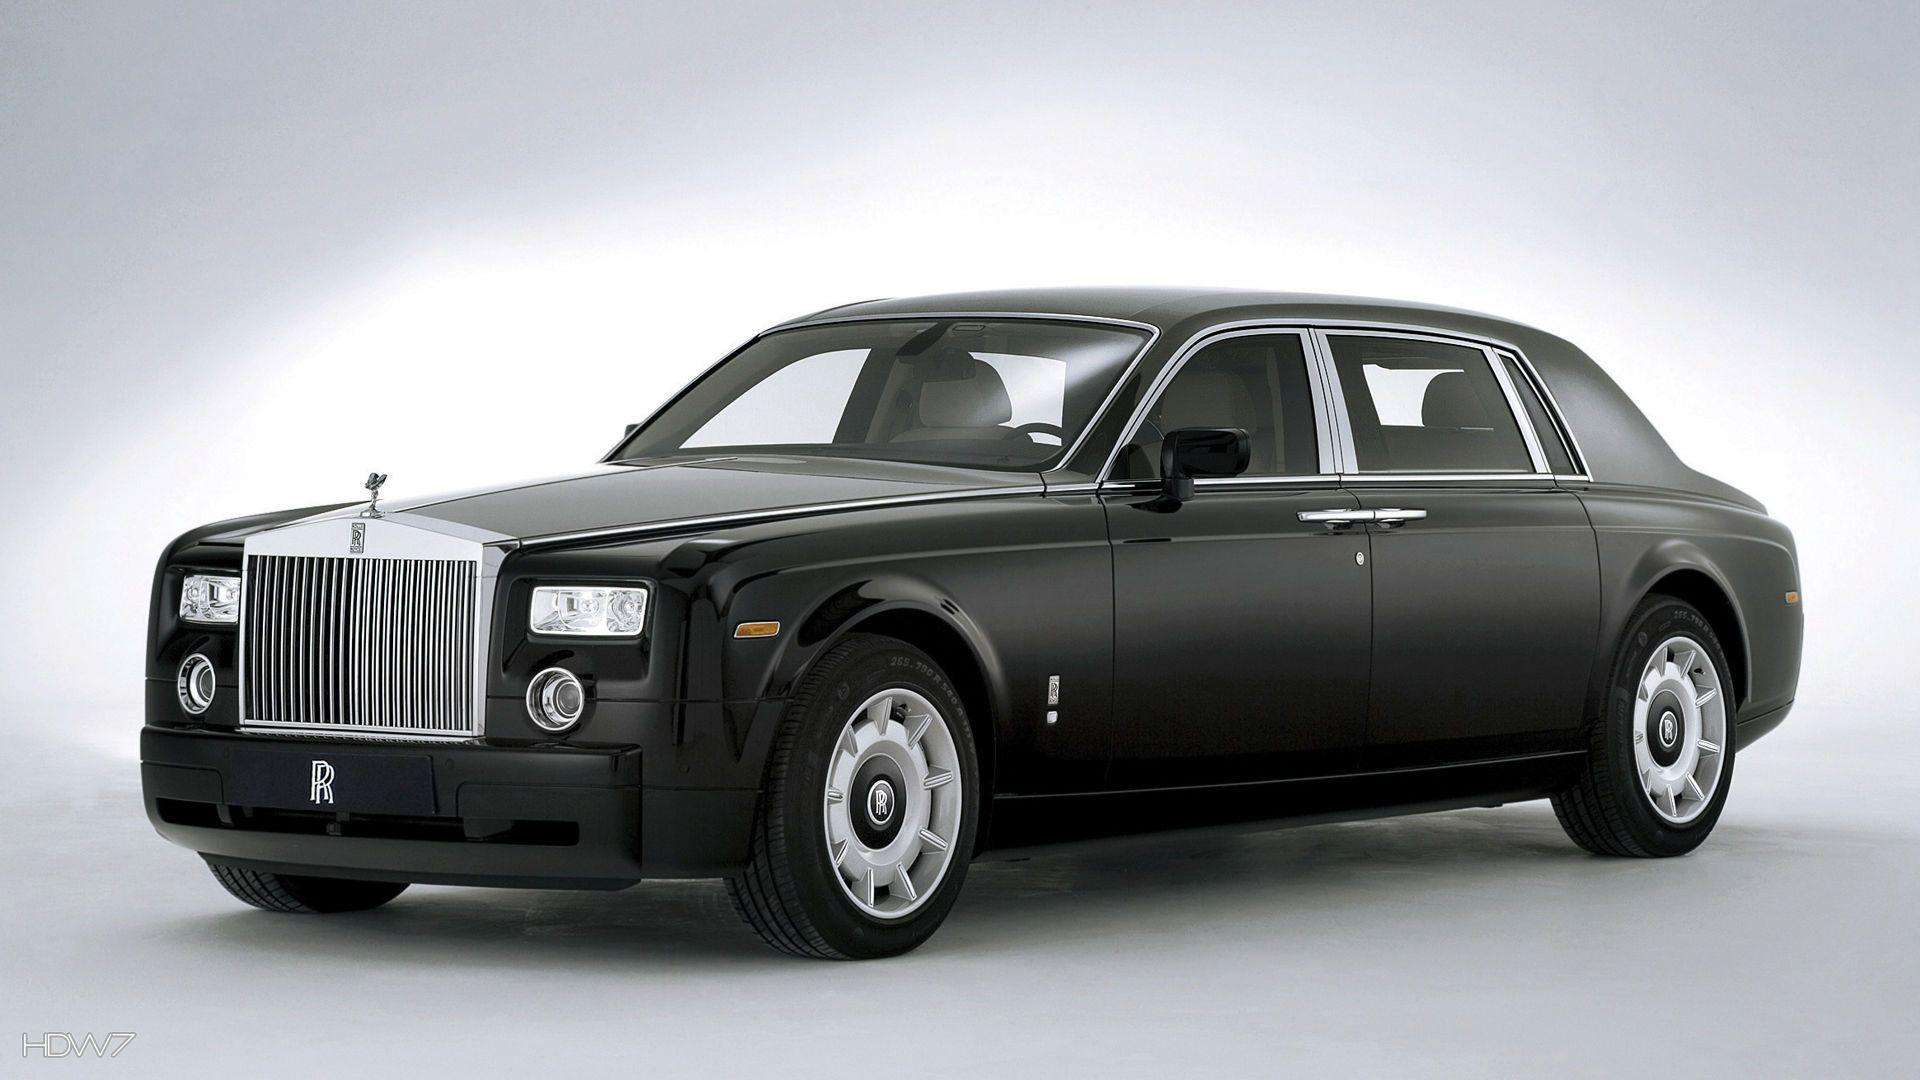 rolls royce phantom extended wheelbase 2005 car hd wallpapers